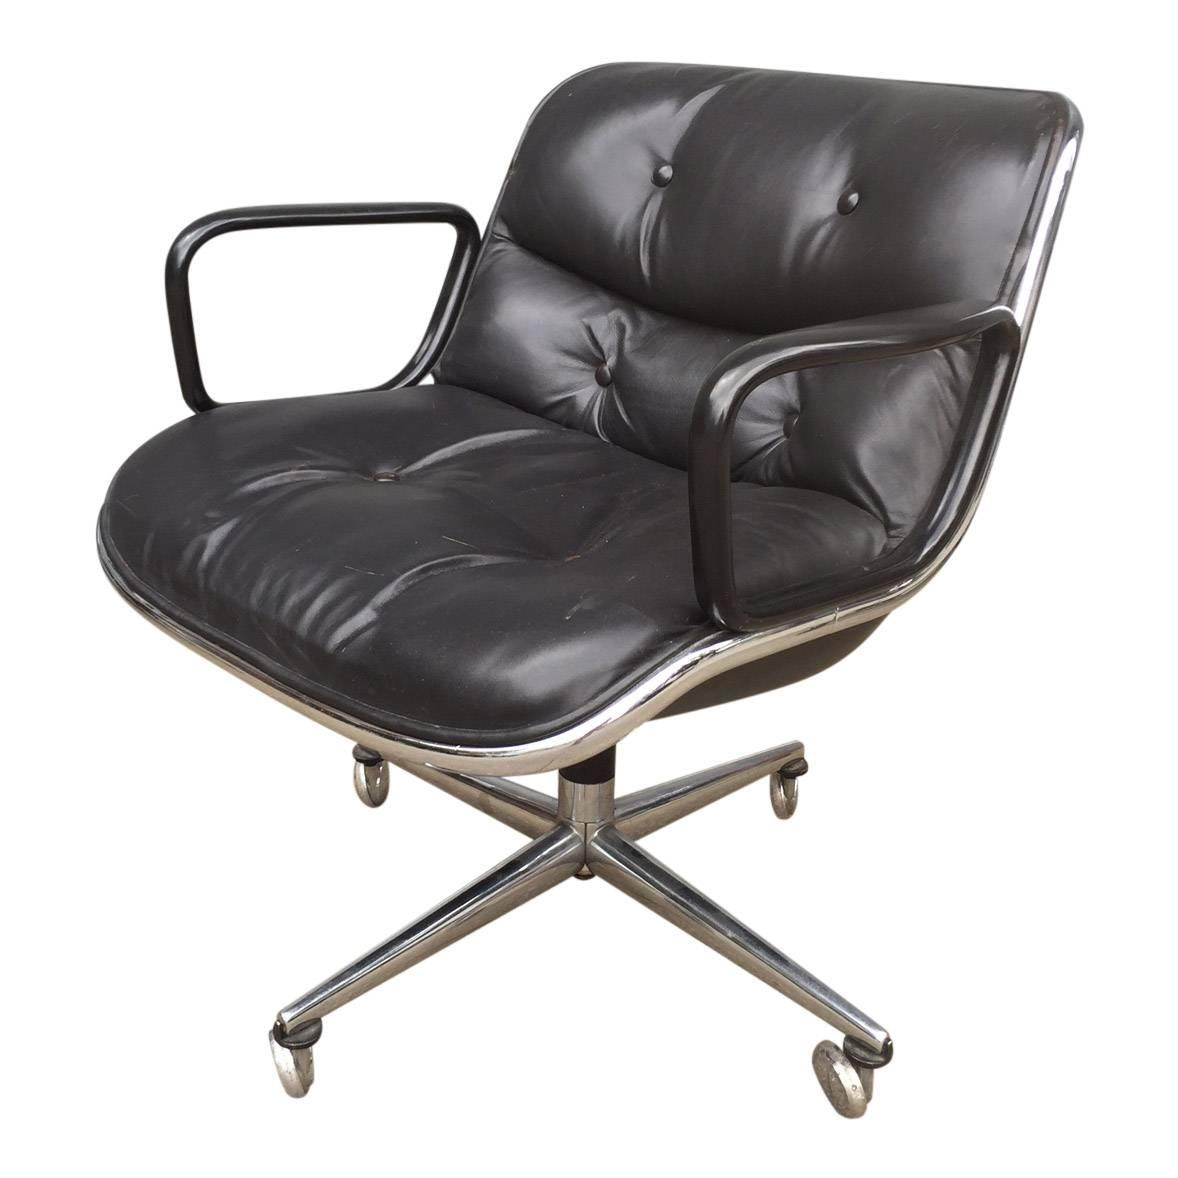 pollock executive chair replica world market leather early charles for knoll office at 1stdibs